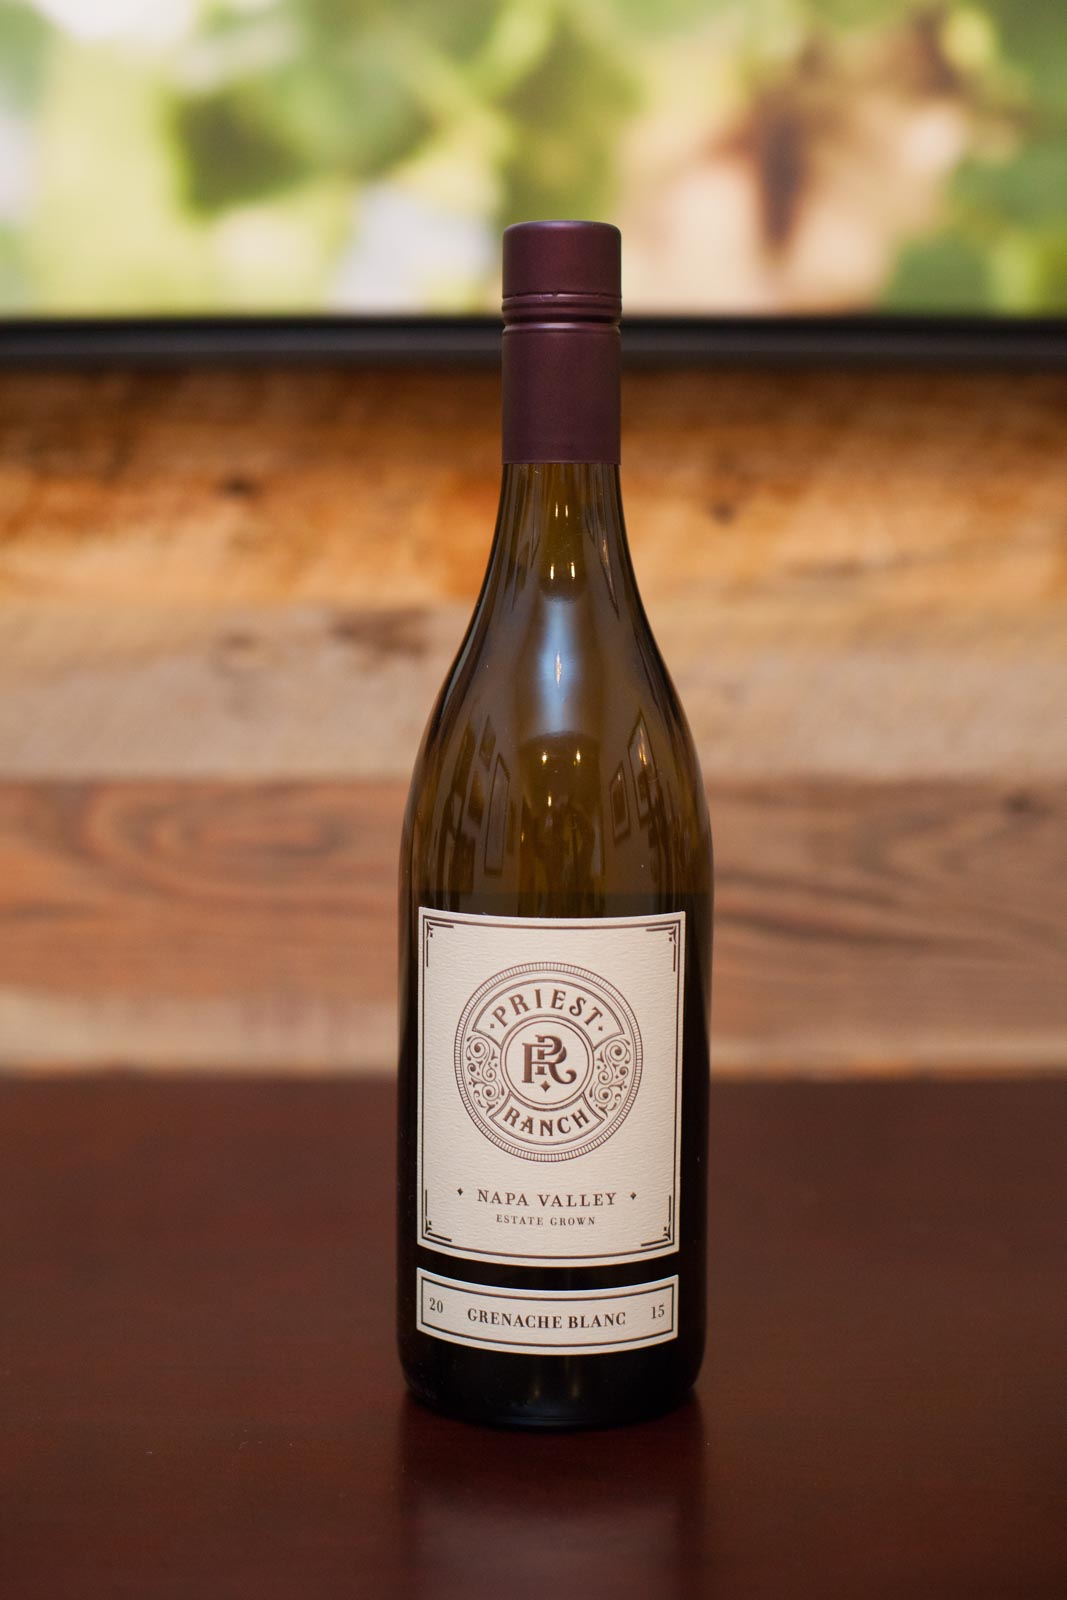 2015 Priest Ranch Grenache Blanc